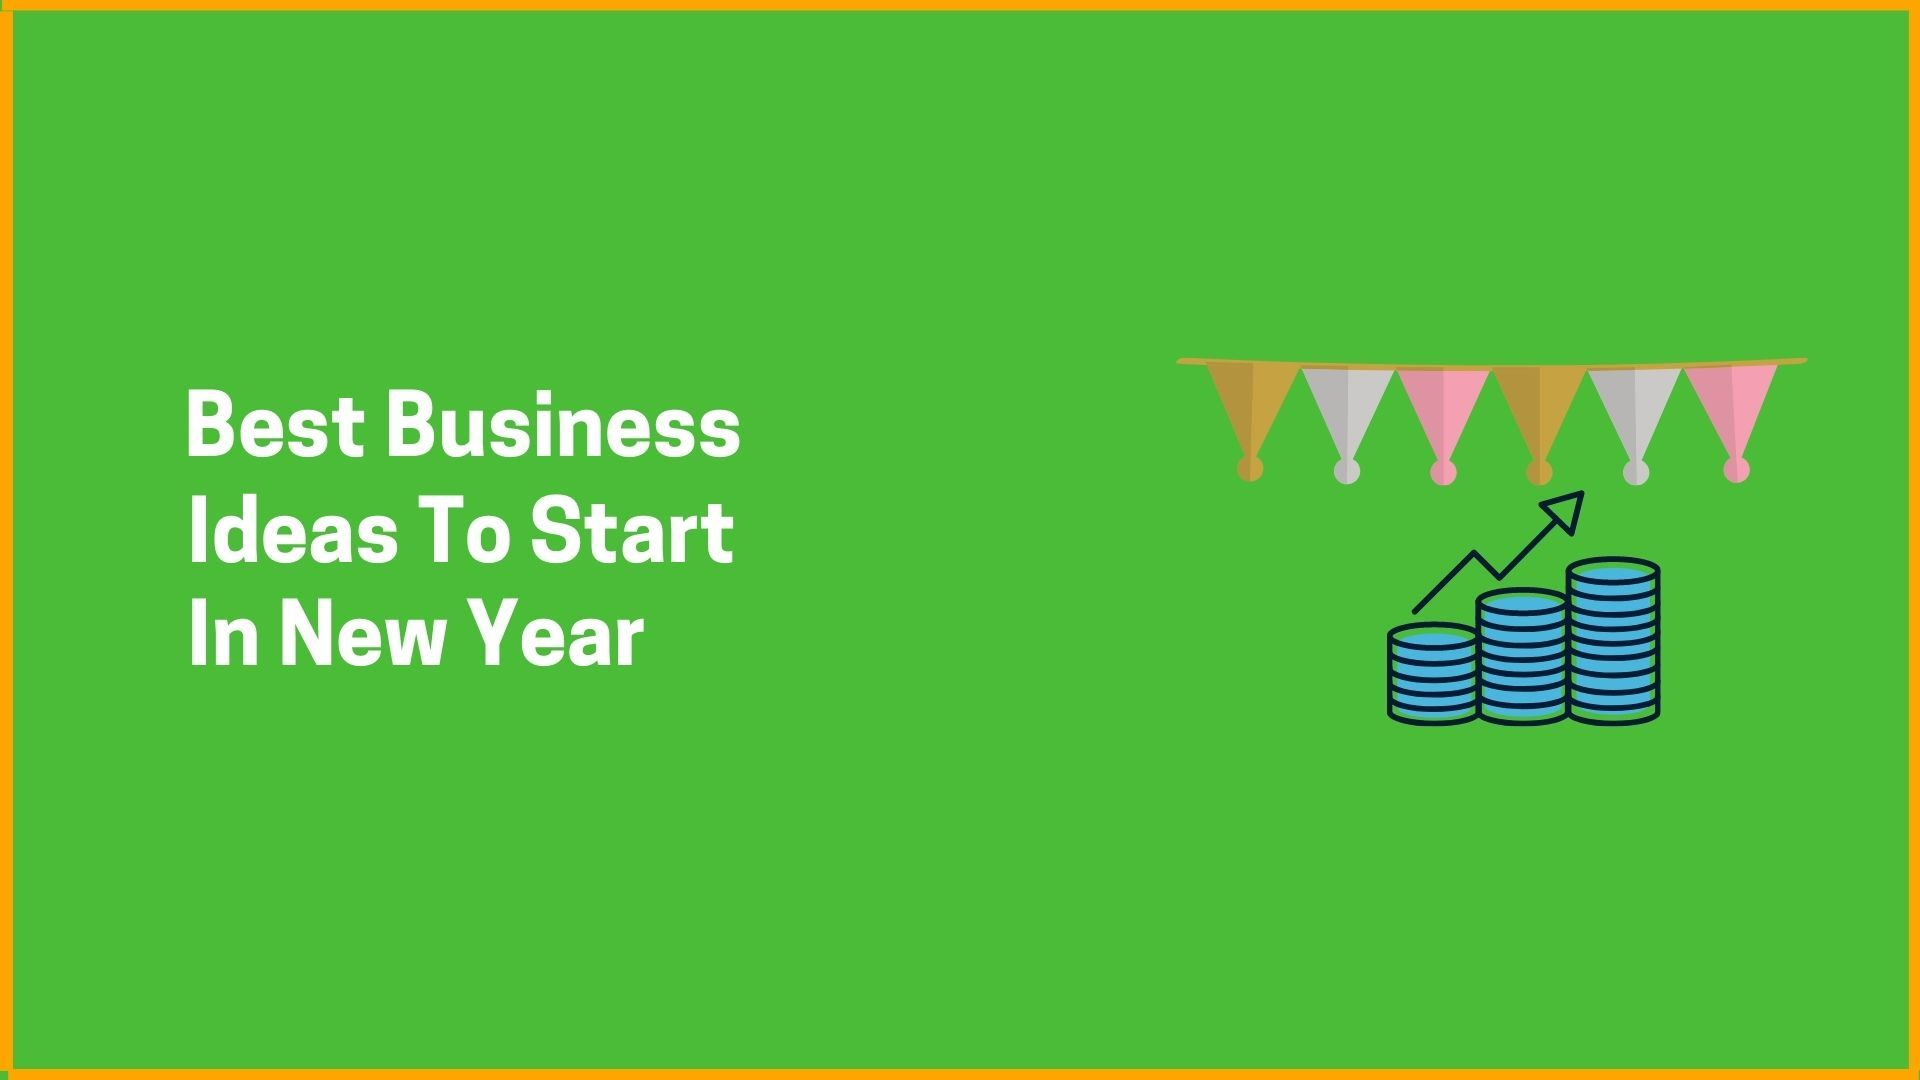 Best Business Ideas To Start In New Year